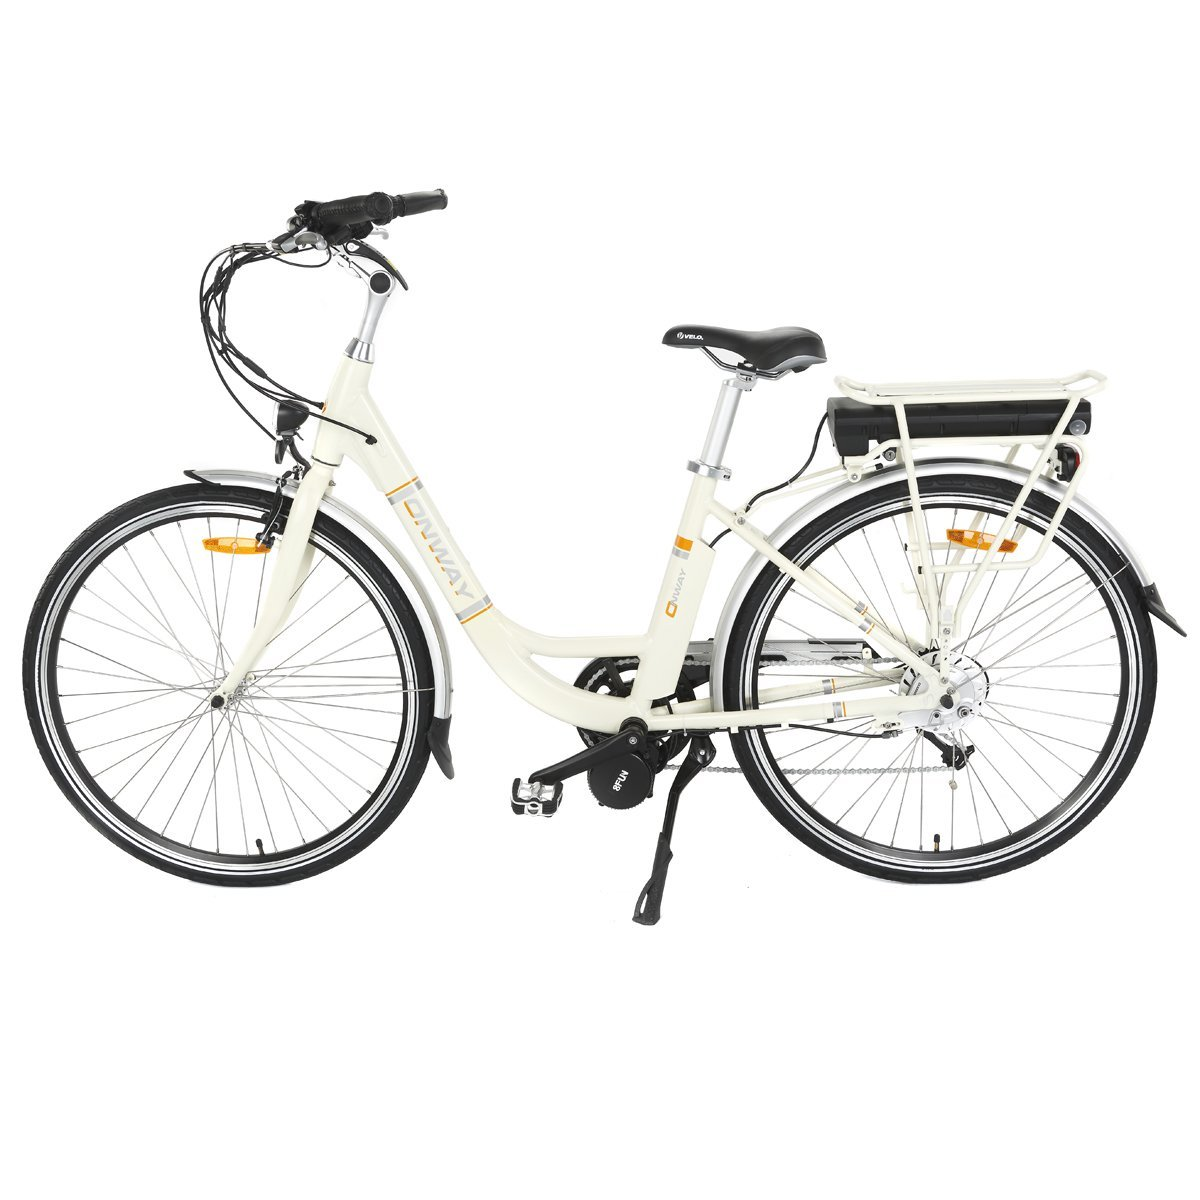 Onway 28 Inch 7 Speed Women City Electric Bike with Pedal Assist, 36V 250W Motor 10.4Ah Sanyo Lithium Battery, 5-Level Assist Electric Bicycle